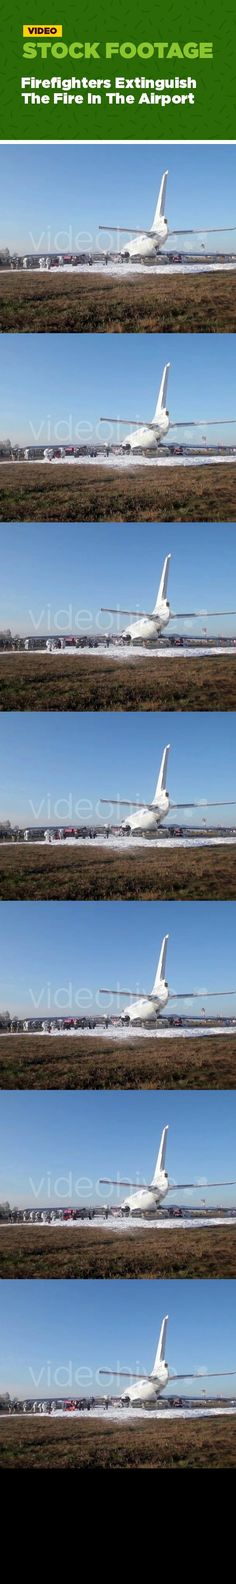 accident, action, airport, burning, emergency, fire, foam, plane, russia, russian, security, training, truck, water, watercannon                                      training in fire fighting aircraft.